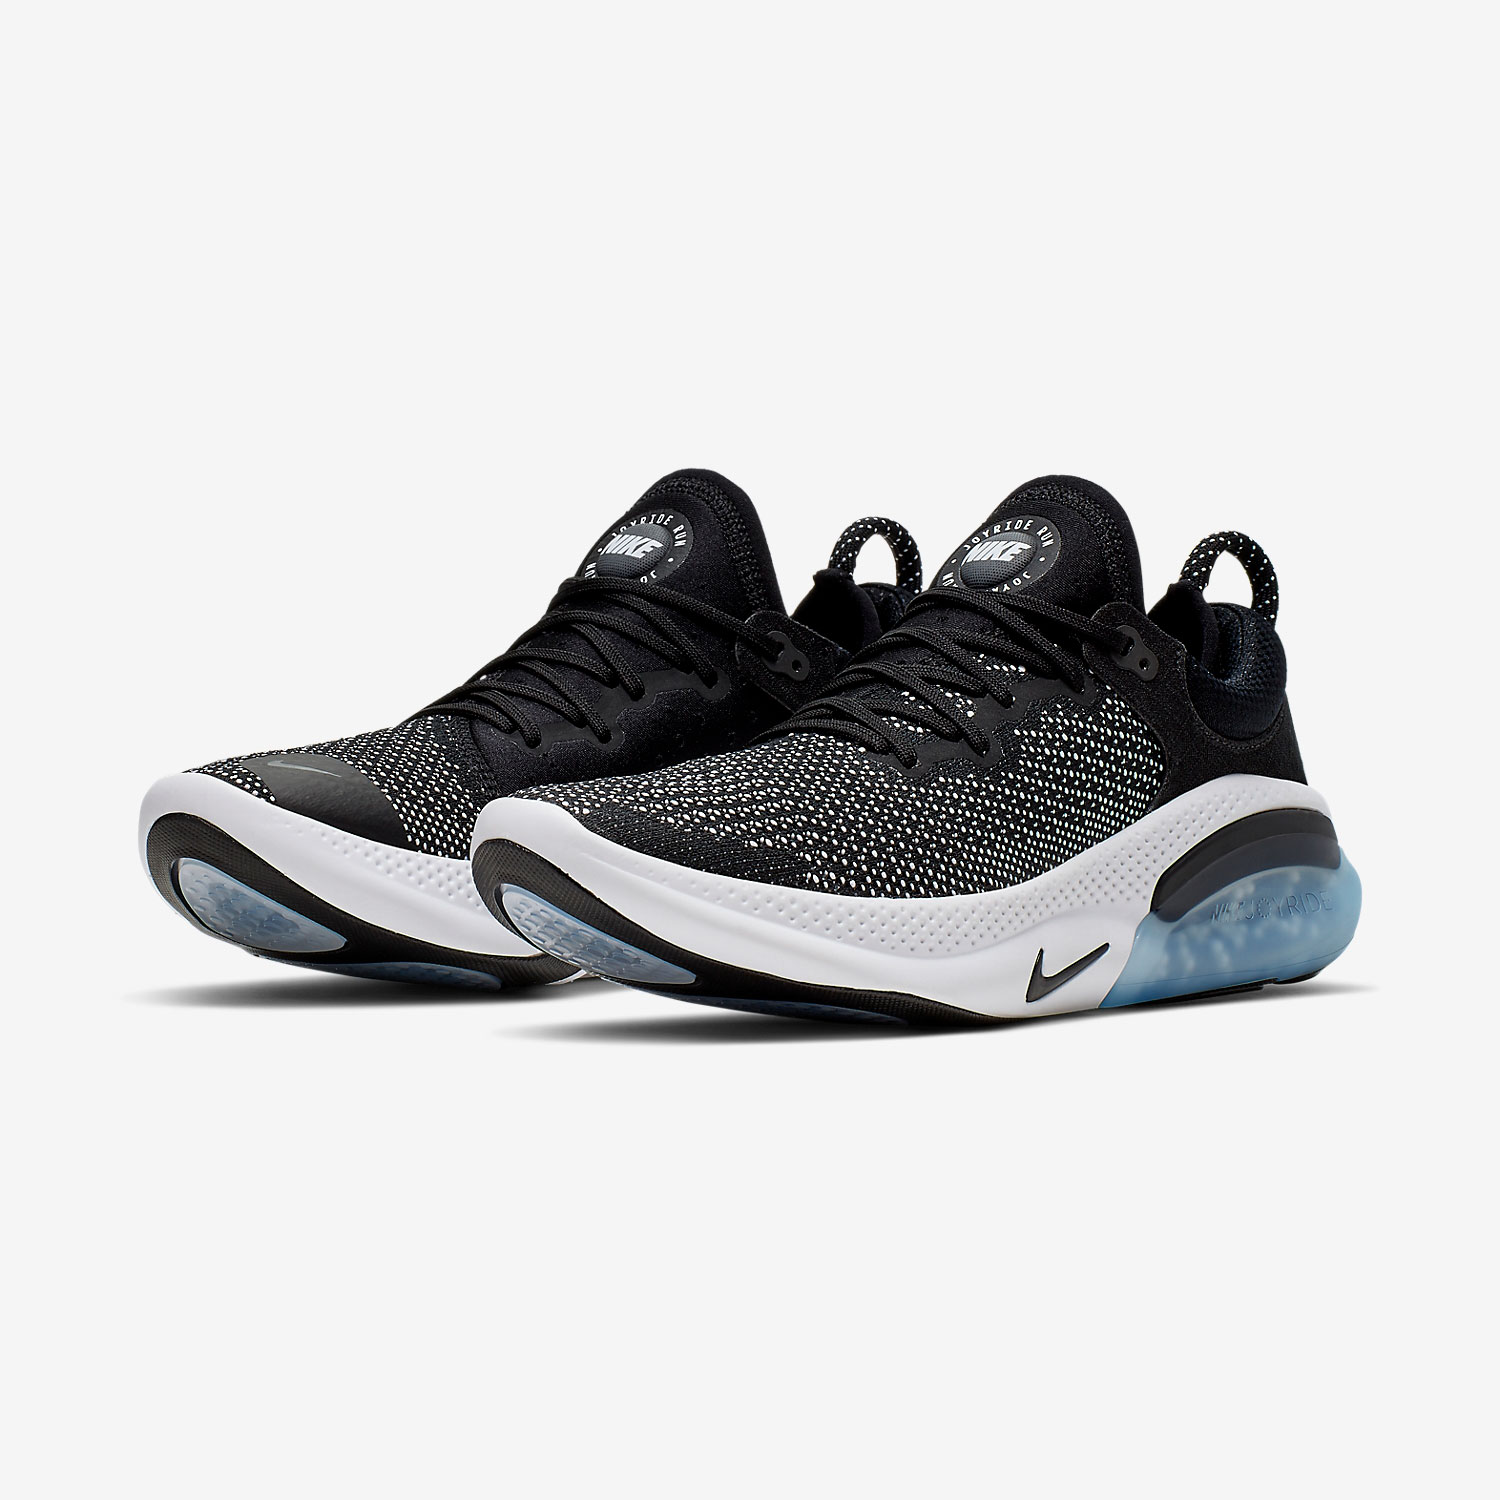 Nike Joyride Run Flyknit - Black/White